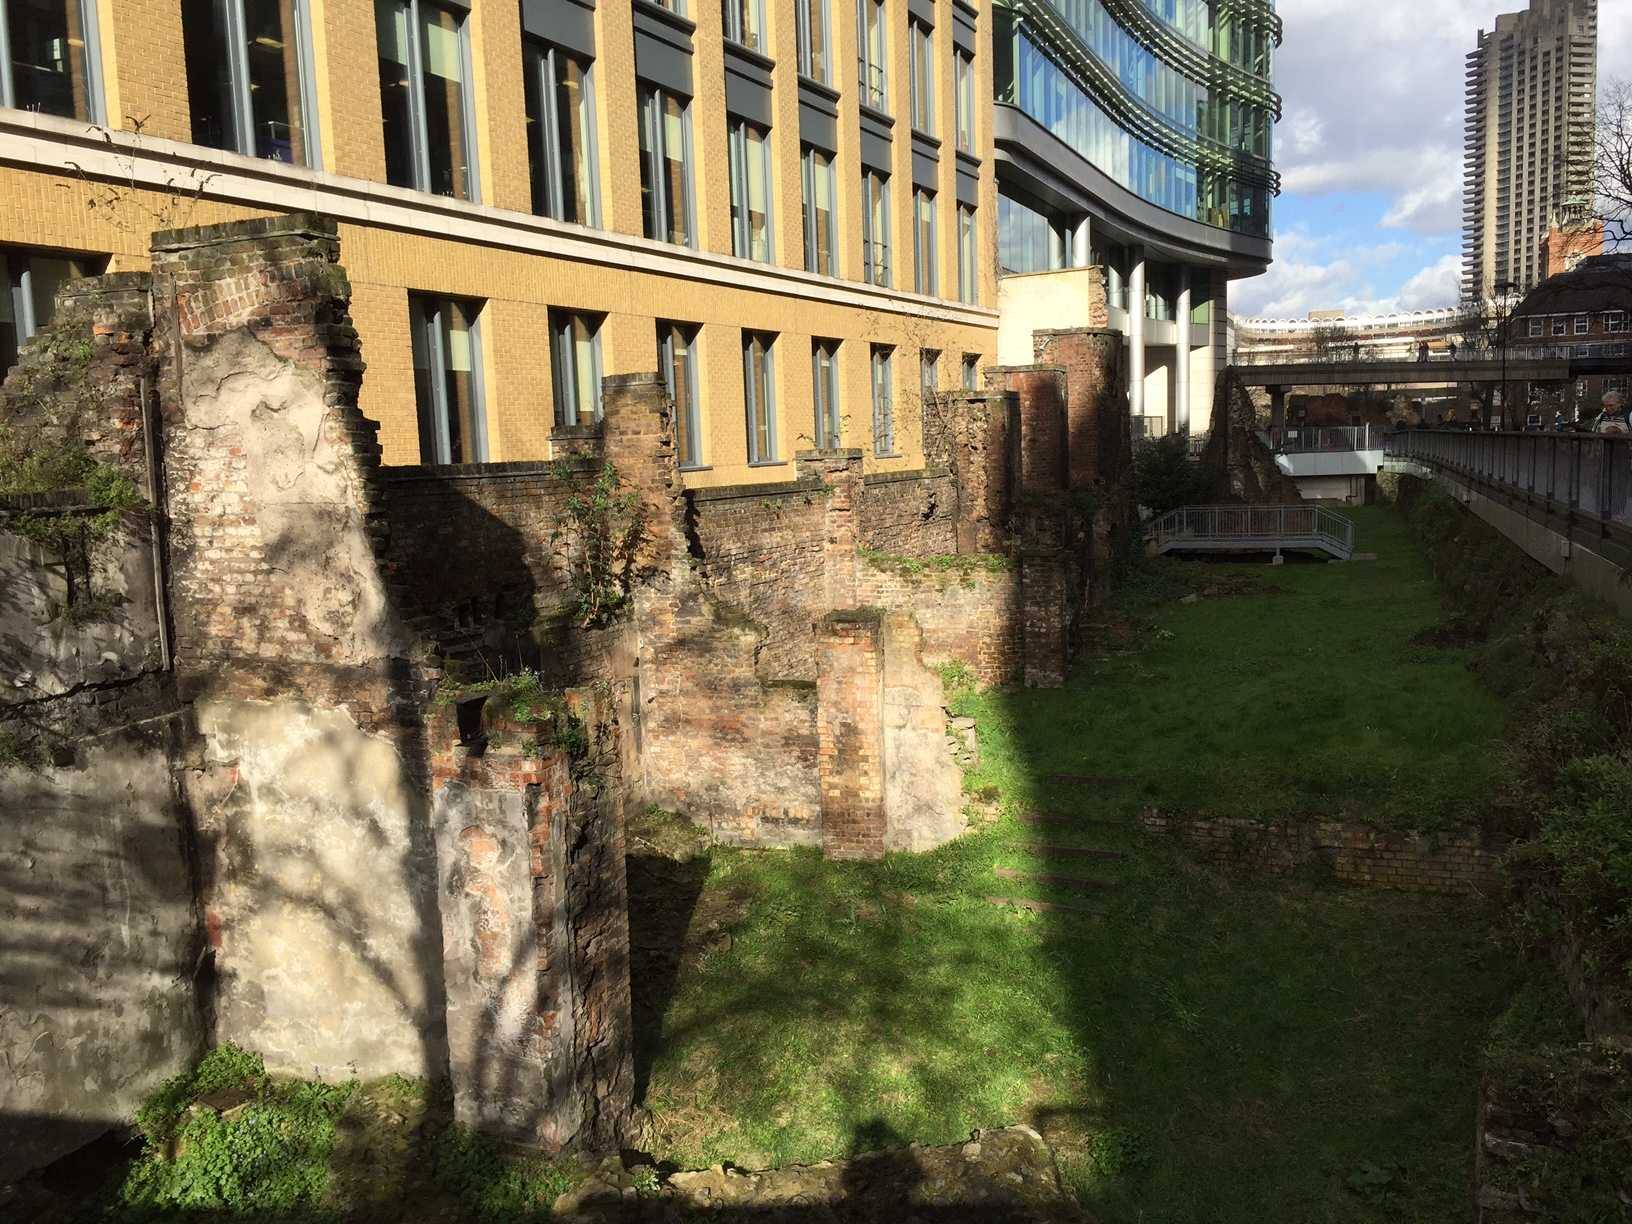 The first Roman Walls in London were built around 200AD.